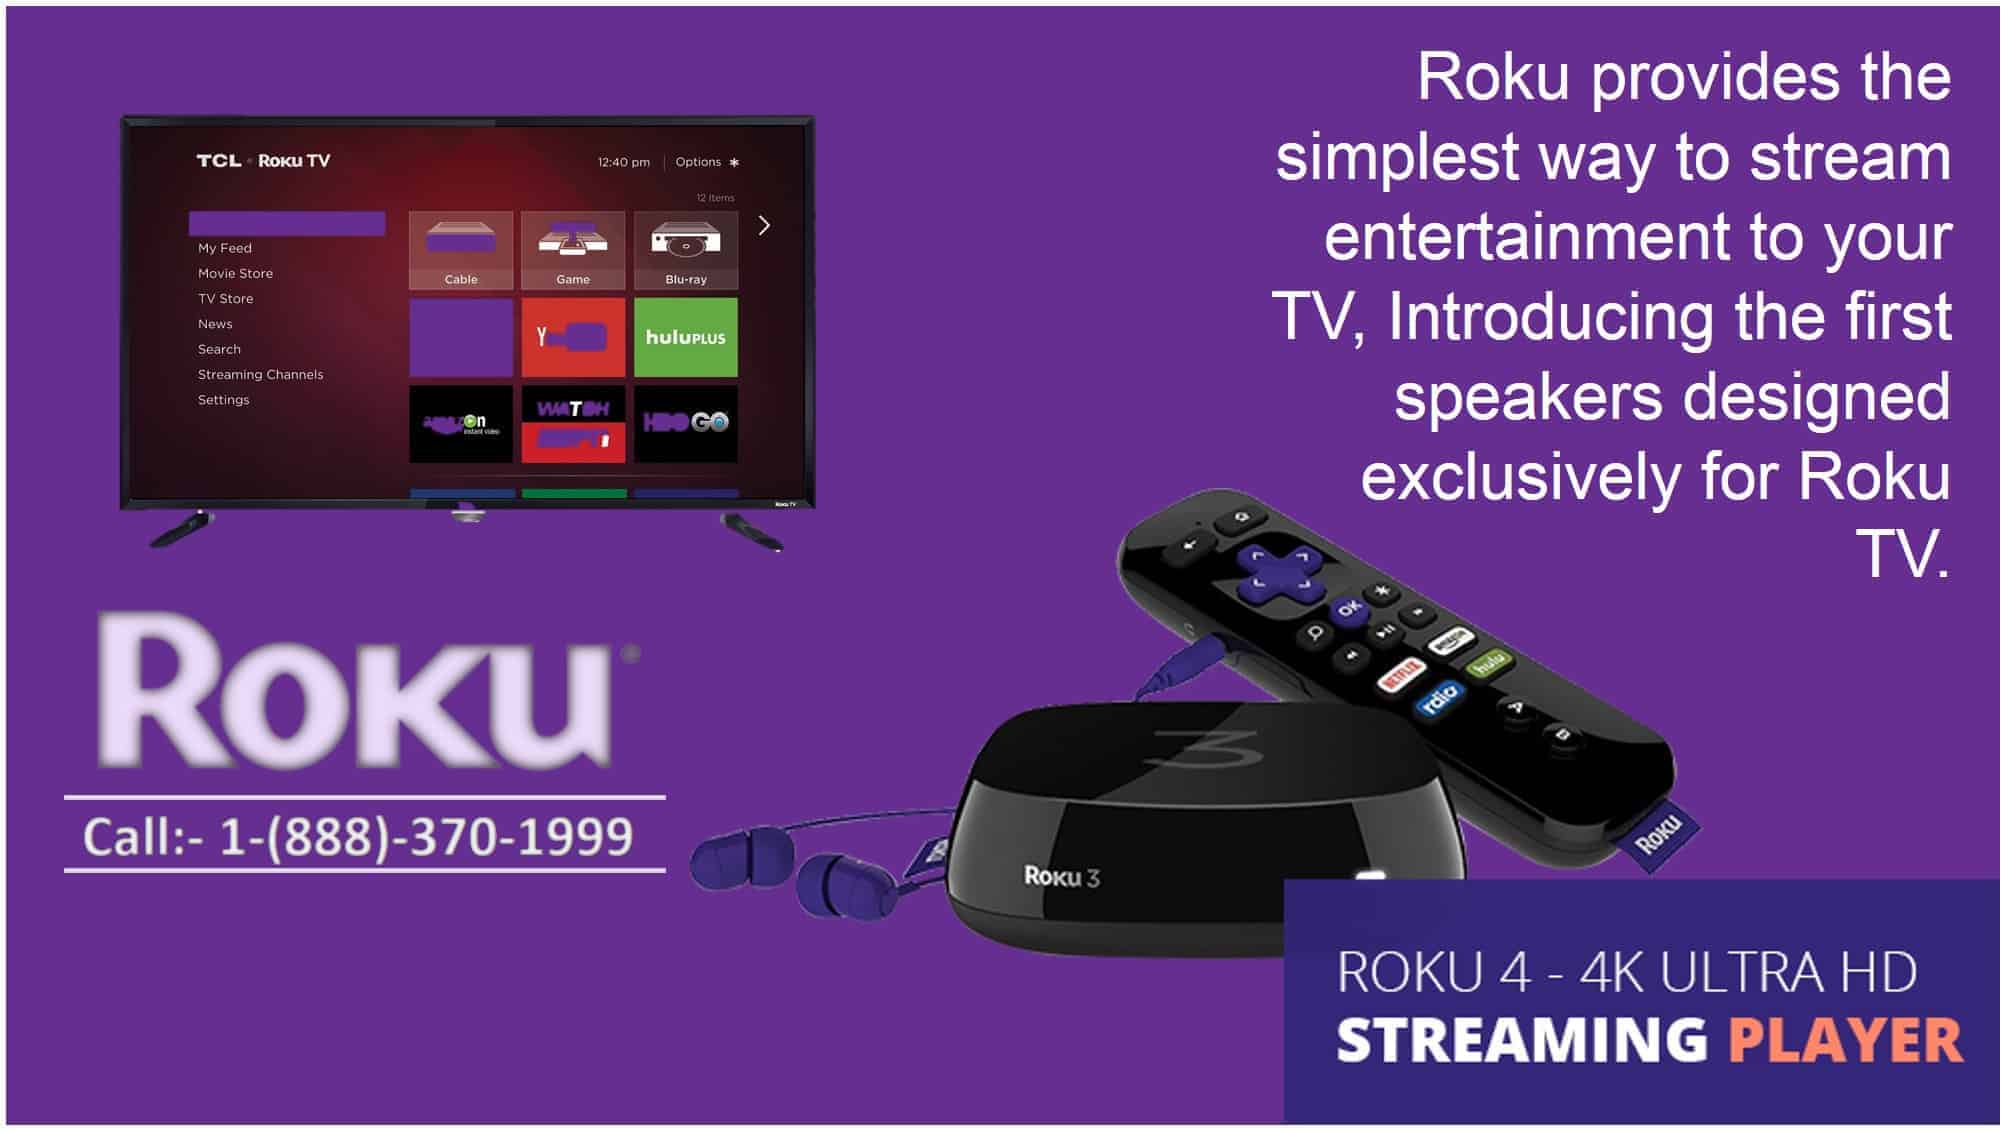 Roku customer support & help number | 1(888)370-1999 |thedevicesupport